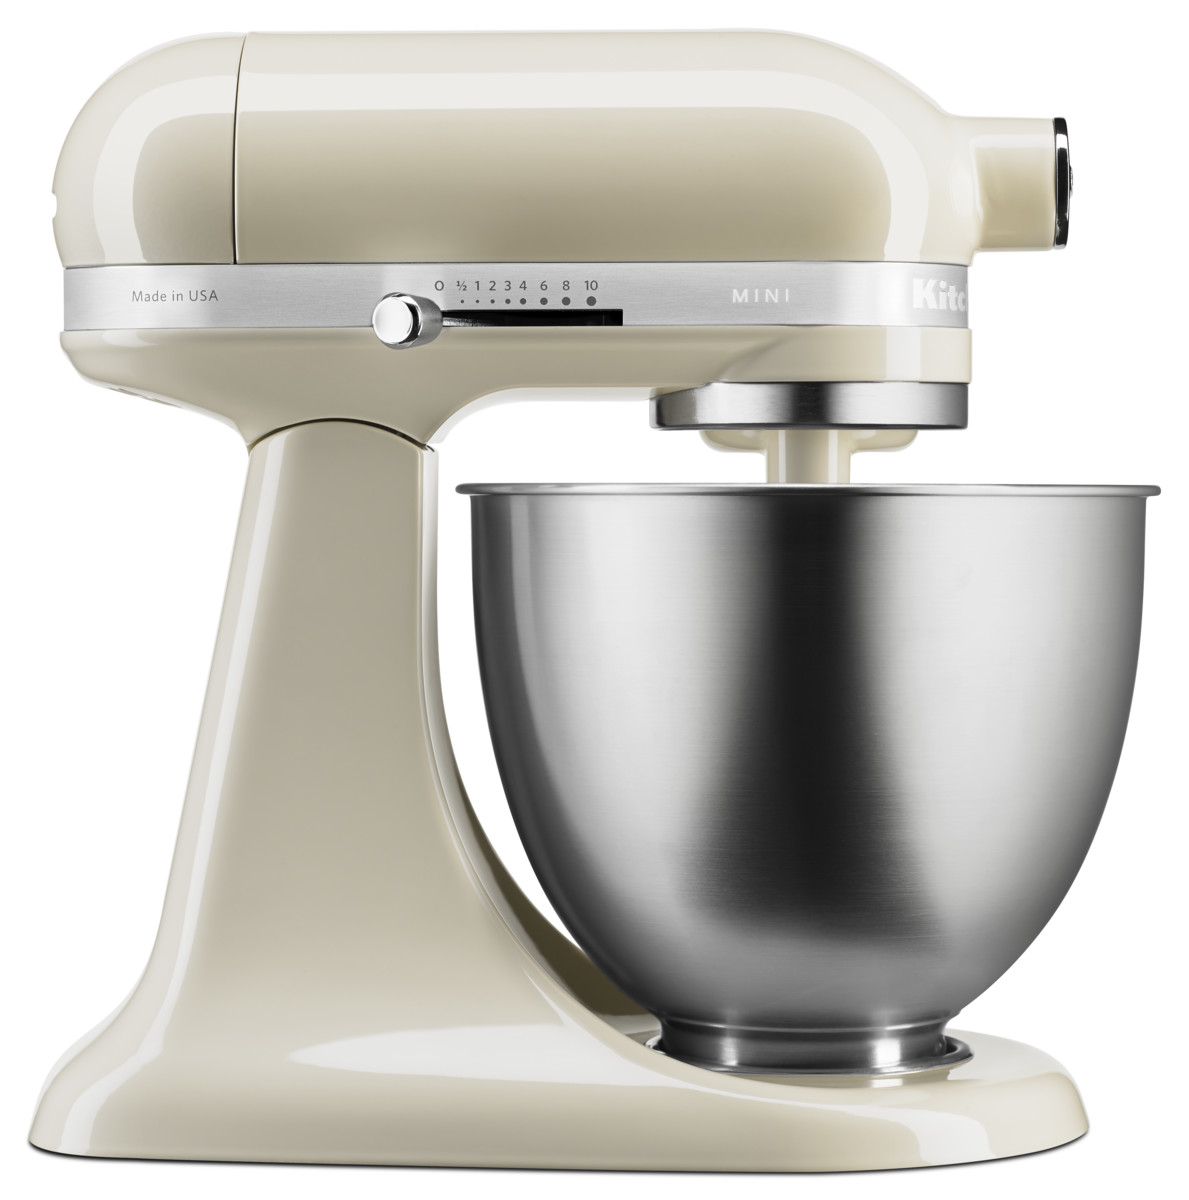 Outlet Kitchen Aid Outlet on tommy bahama outlet, yves delorme outlet, arthur court outlet, royal doulton outlet, 10 strawberry street outlet, ralph lauren outlet, bose outlet, dewalt outlet, apple outlet,